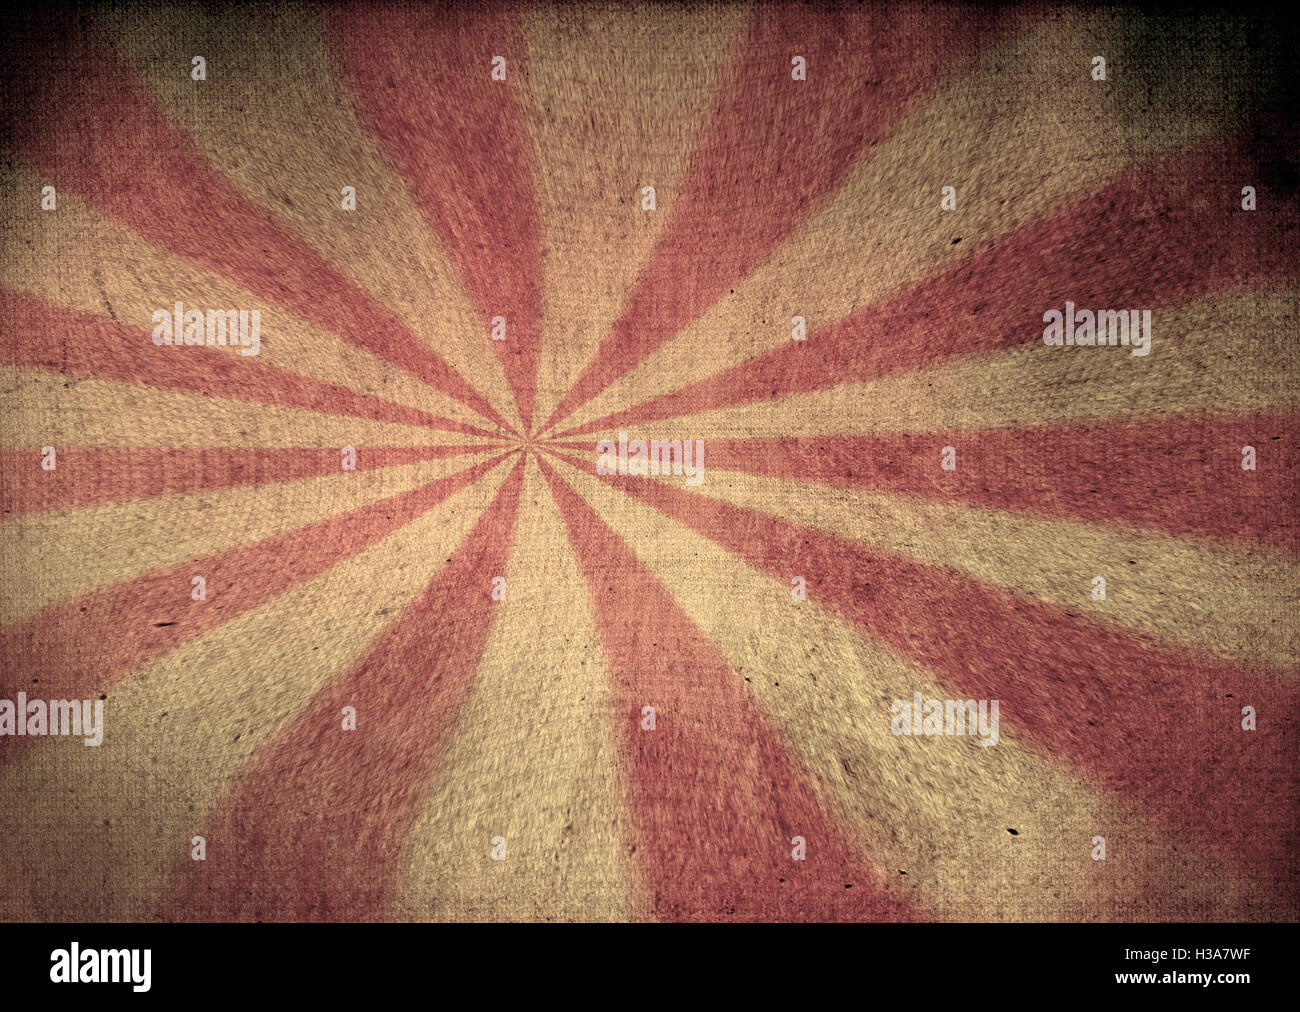 Vintage red and yellow sunburst circus tent background & Vintage red and yellow sunburst circus tent background Stock Photo ...